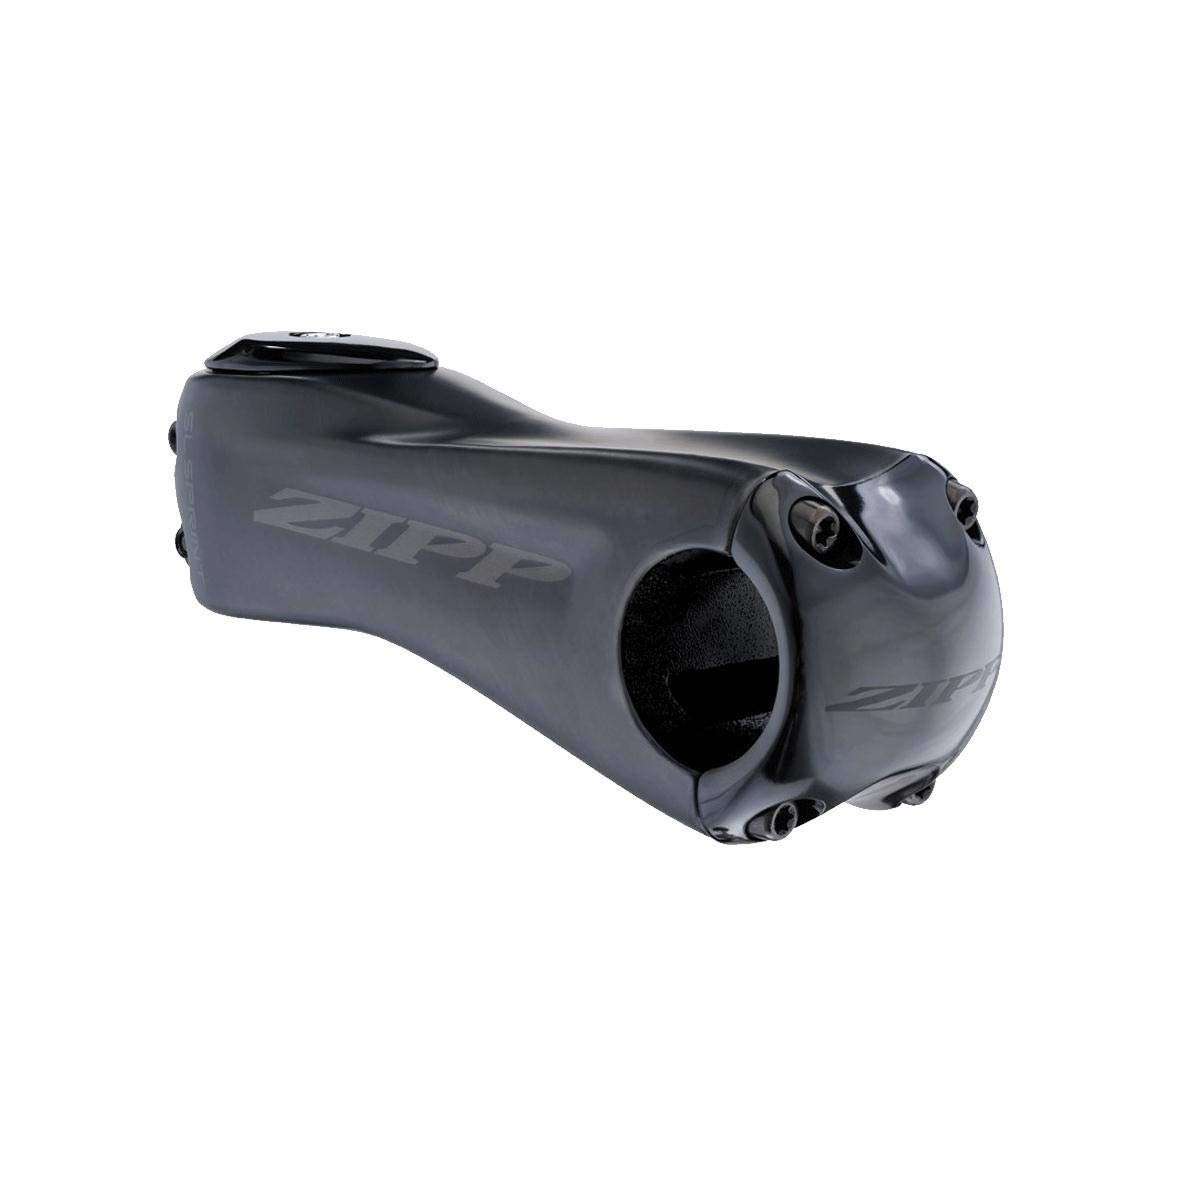 Zipp SL Sprint Carbon Stem Matte Black/Black, 90mm/-12deg by Zipp